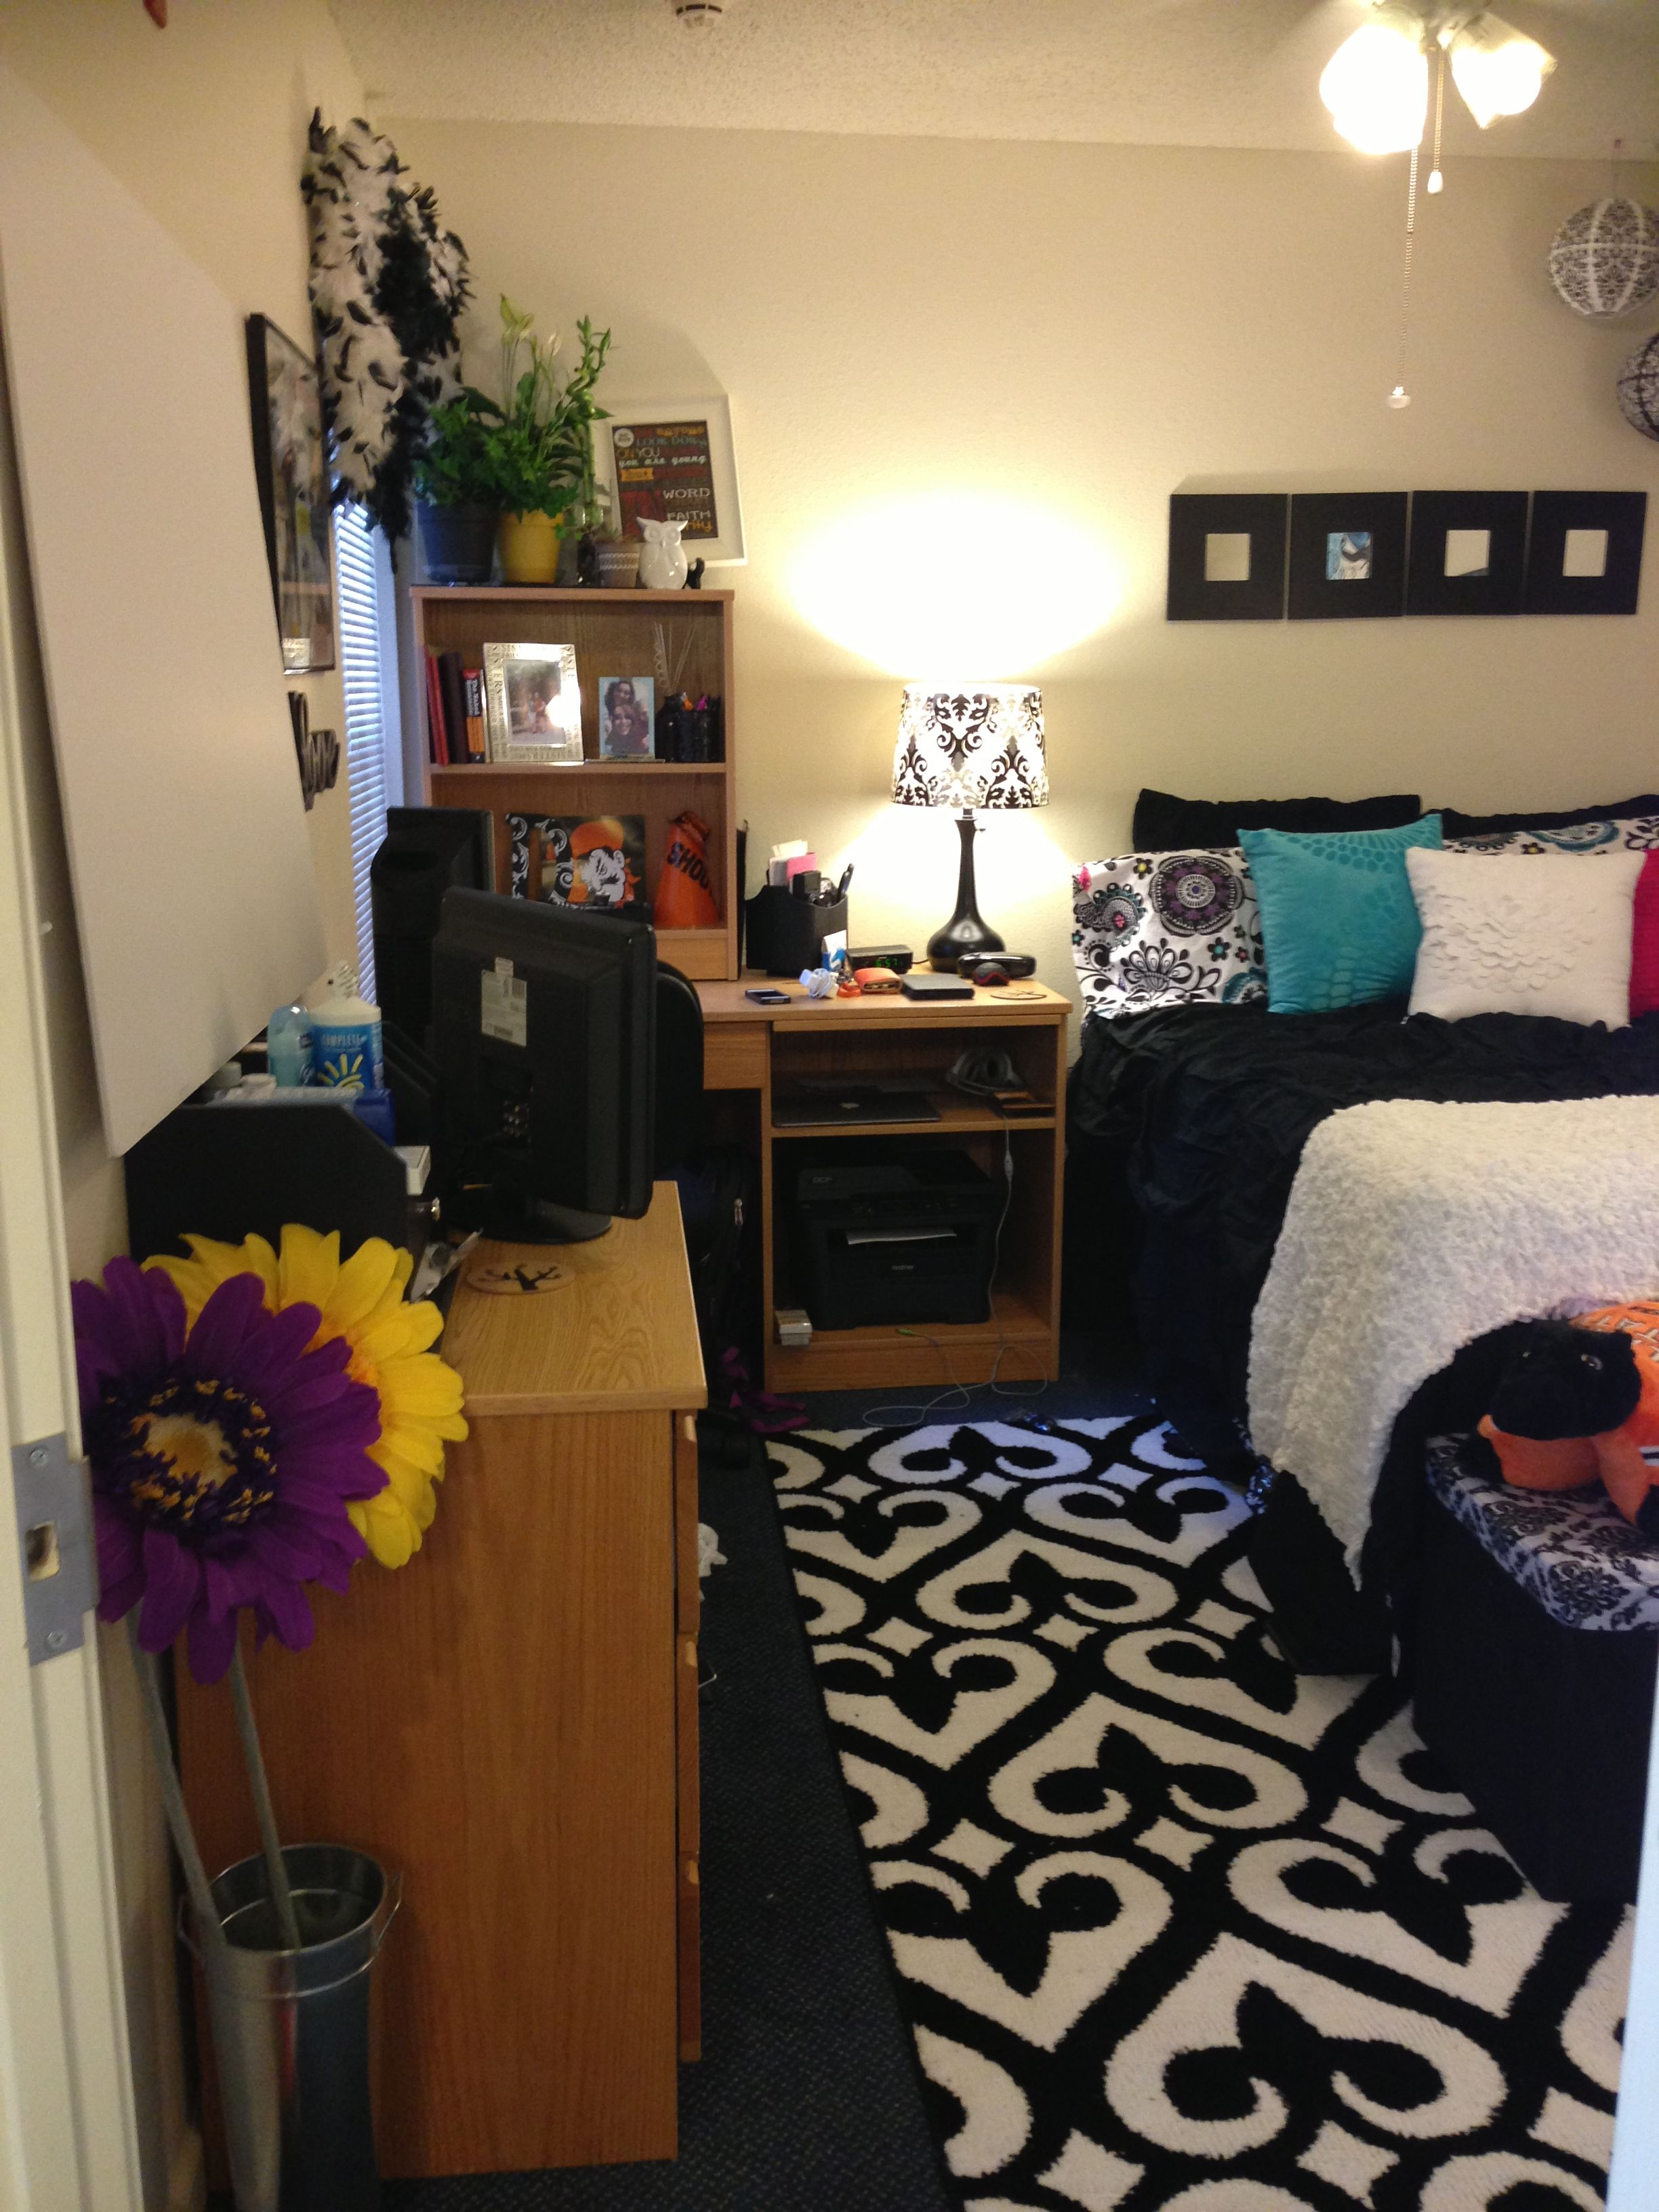 Ikea Dorm Room Ideas: We Started With Sheets From PBTeen For Our College